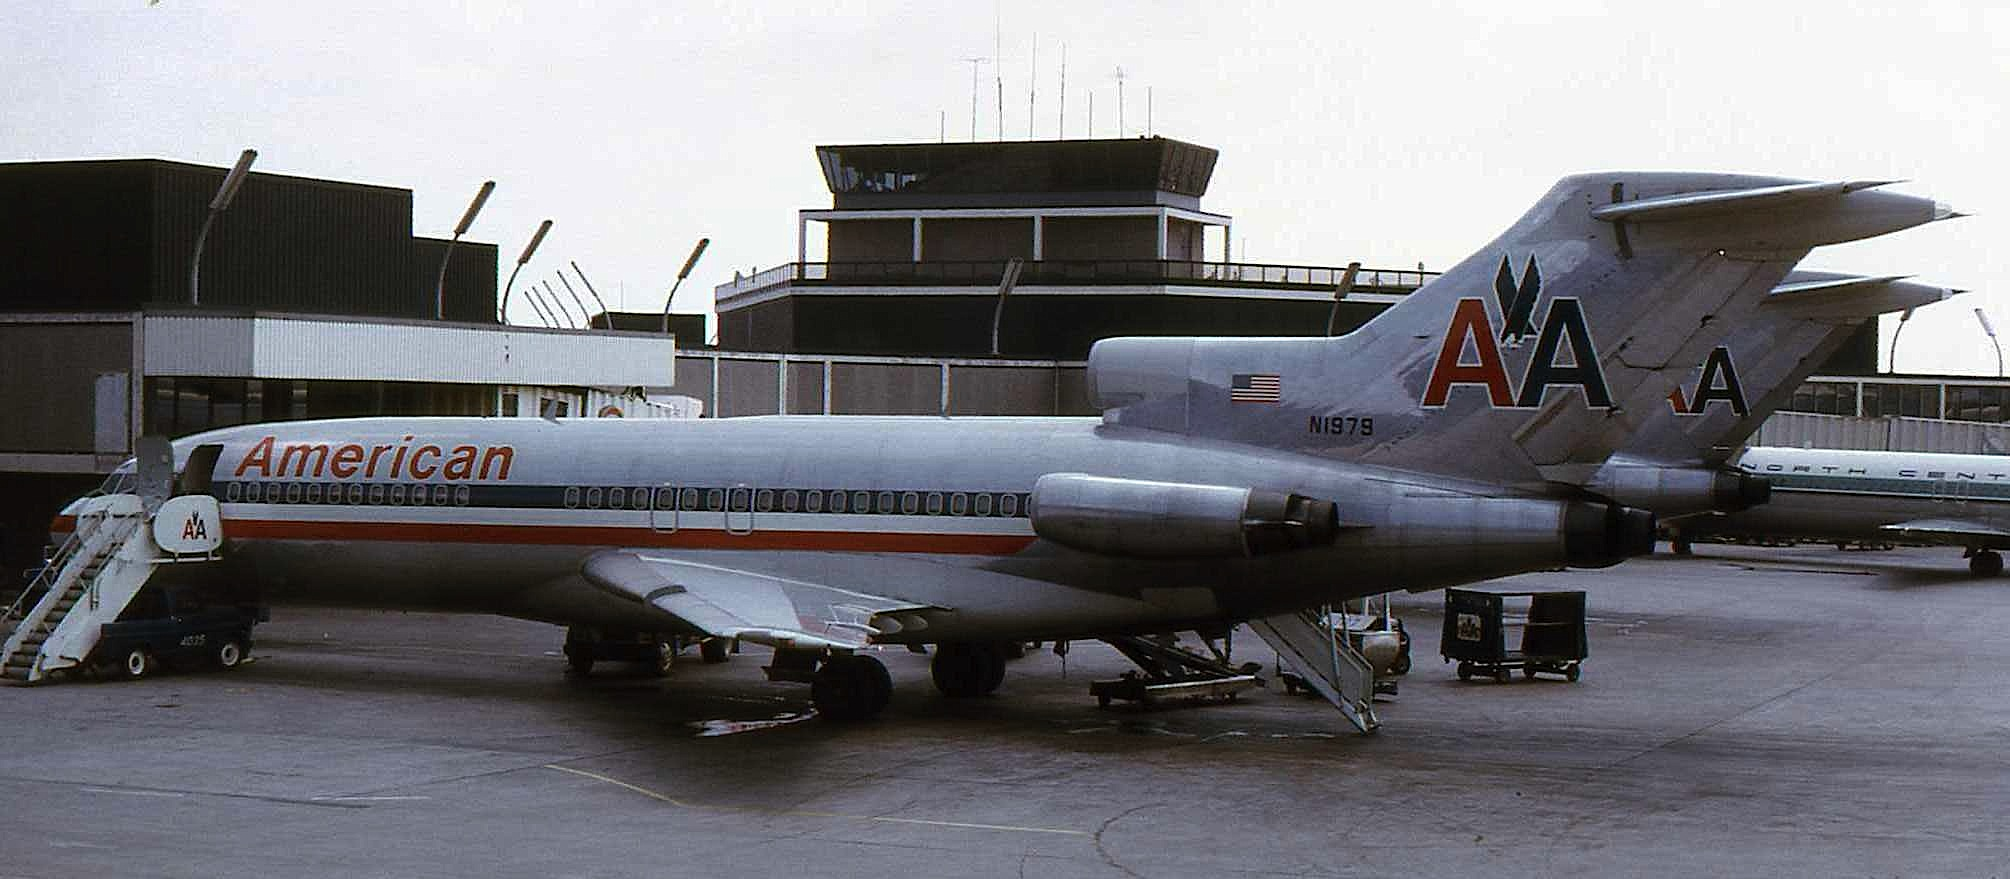 Http Commons Wikimedia Org Wiki File American Airlines B 727 N1979 Jpg